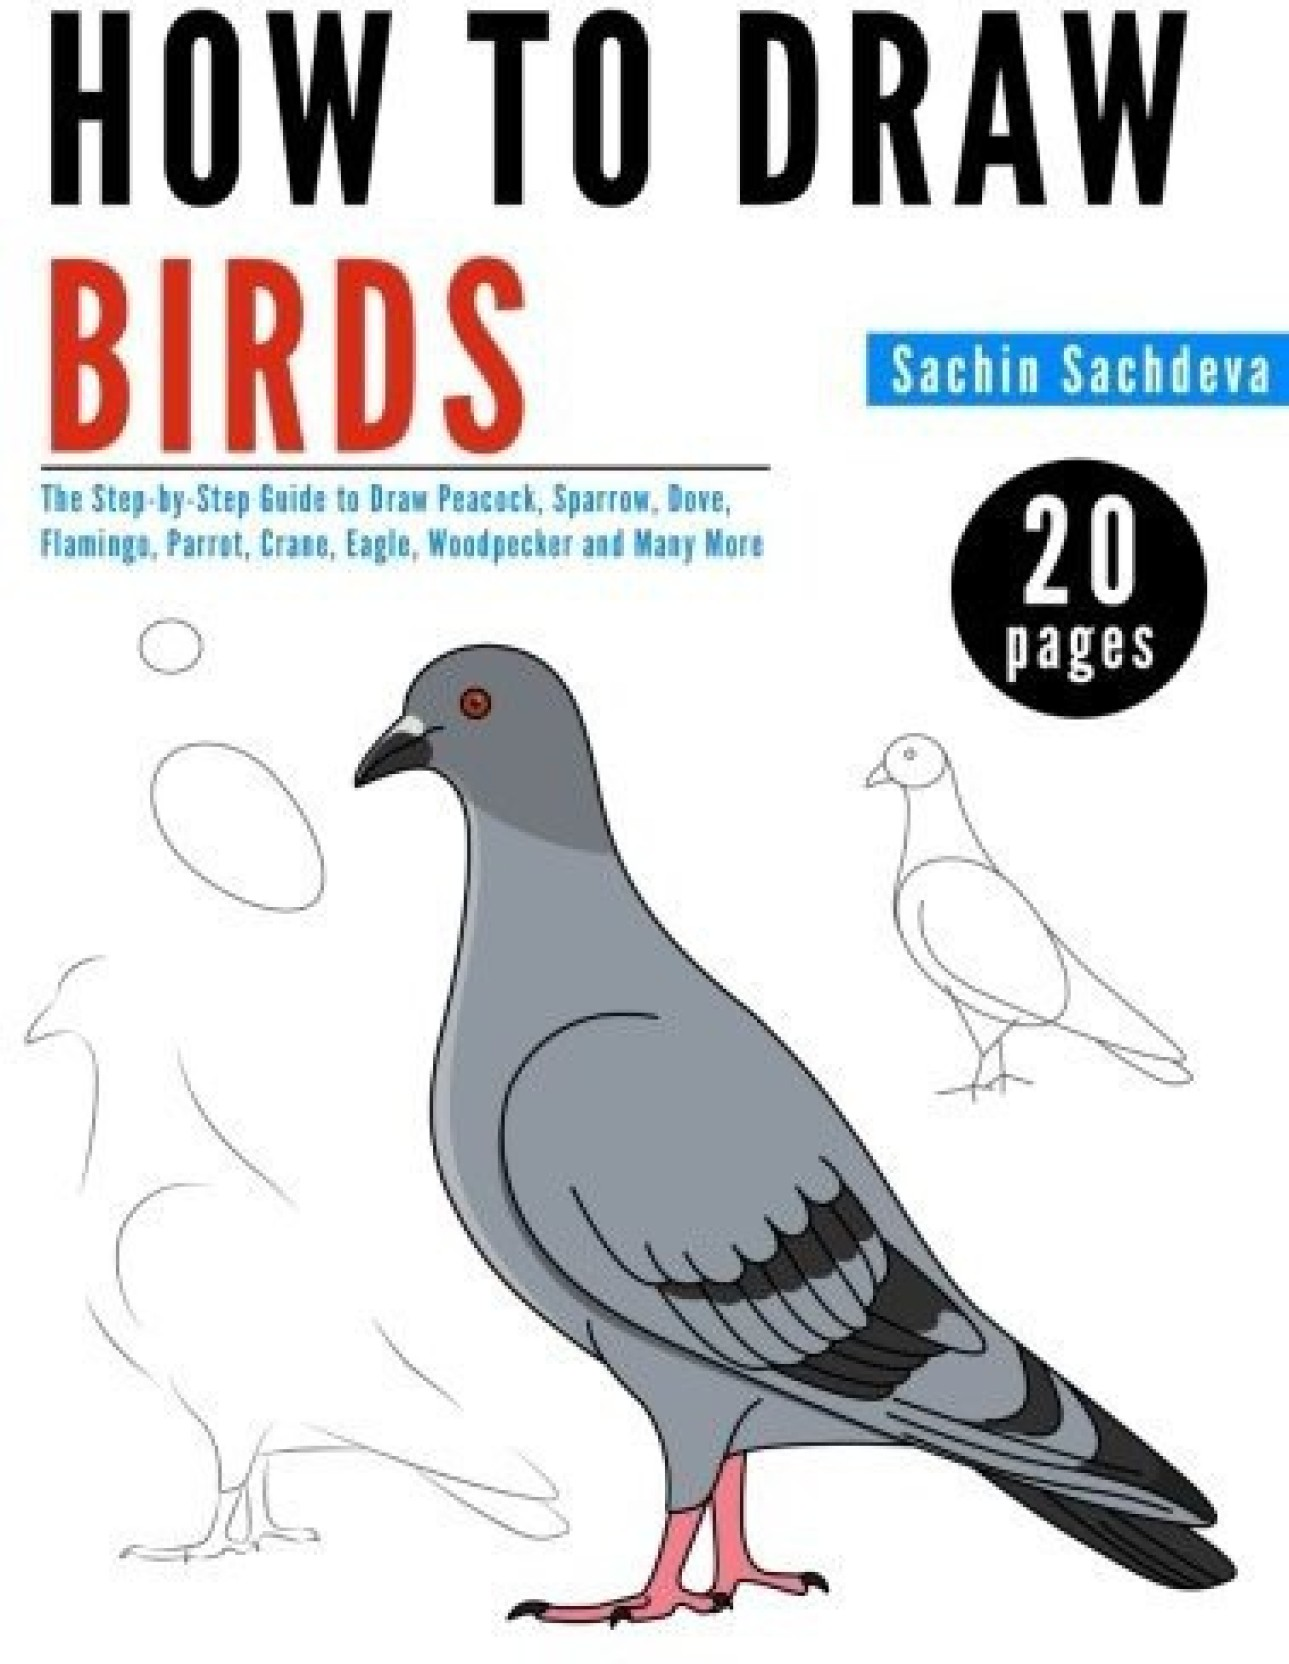 Generic How to Draw Birds The Step by Step Guide to Draw